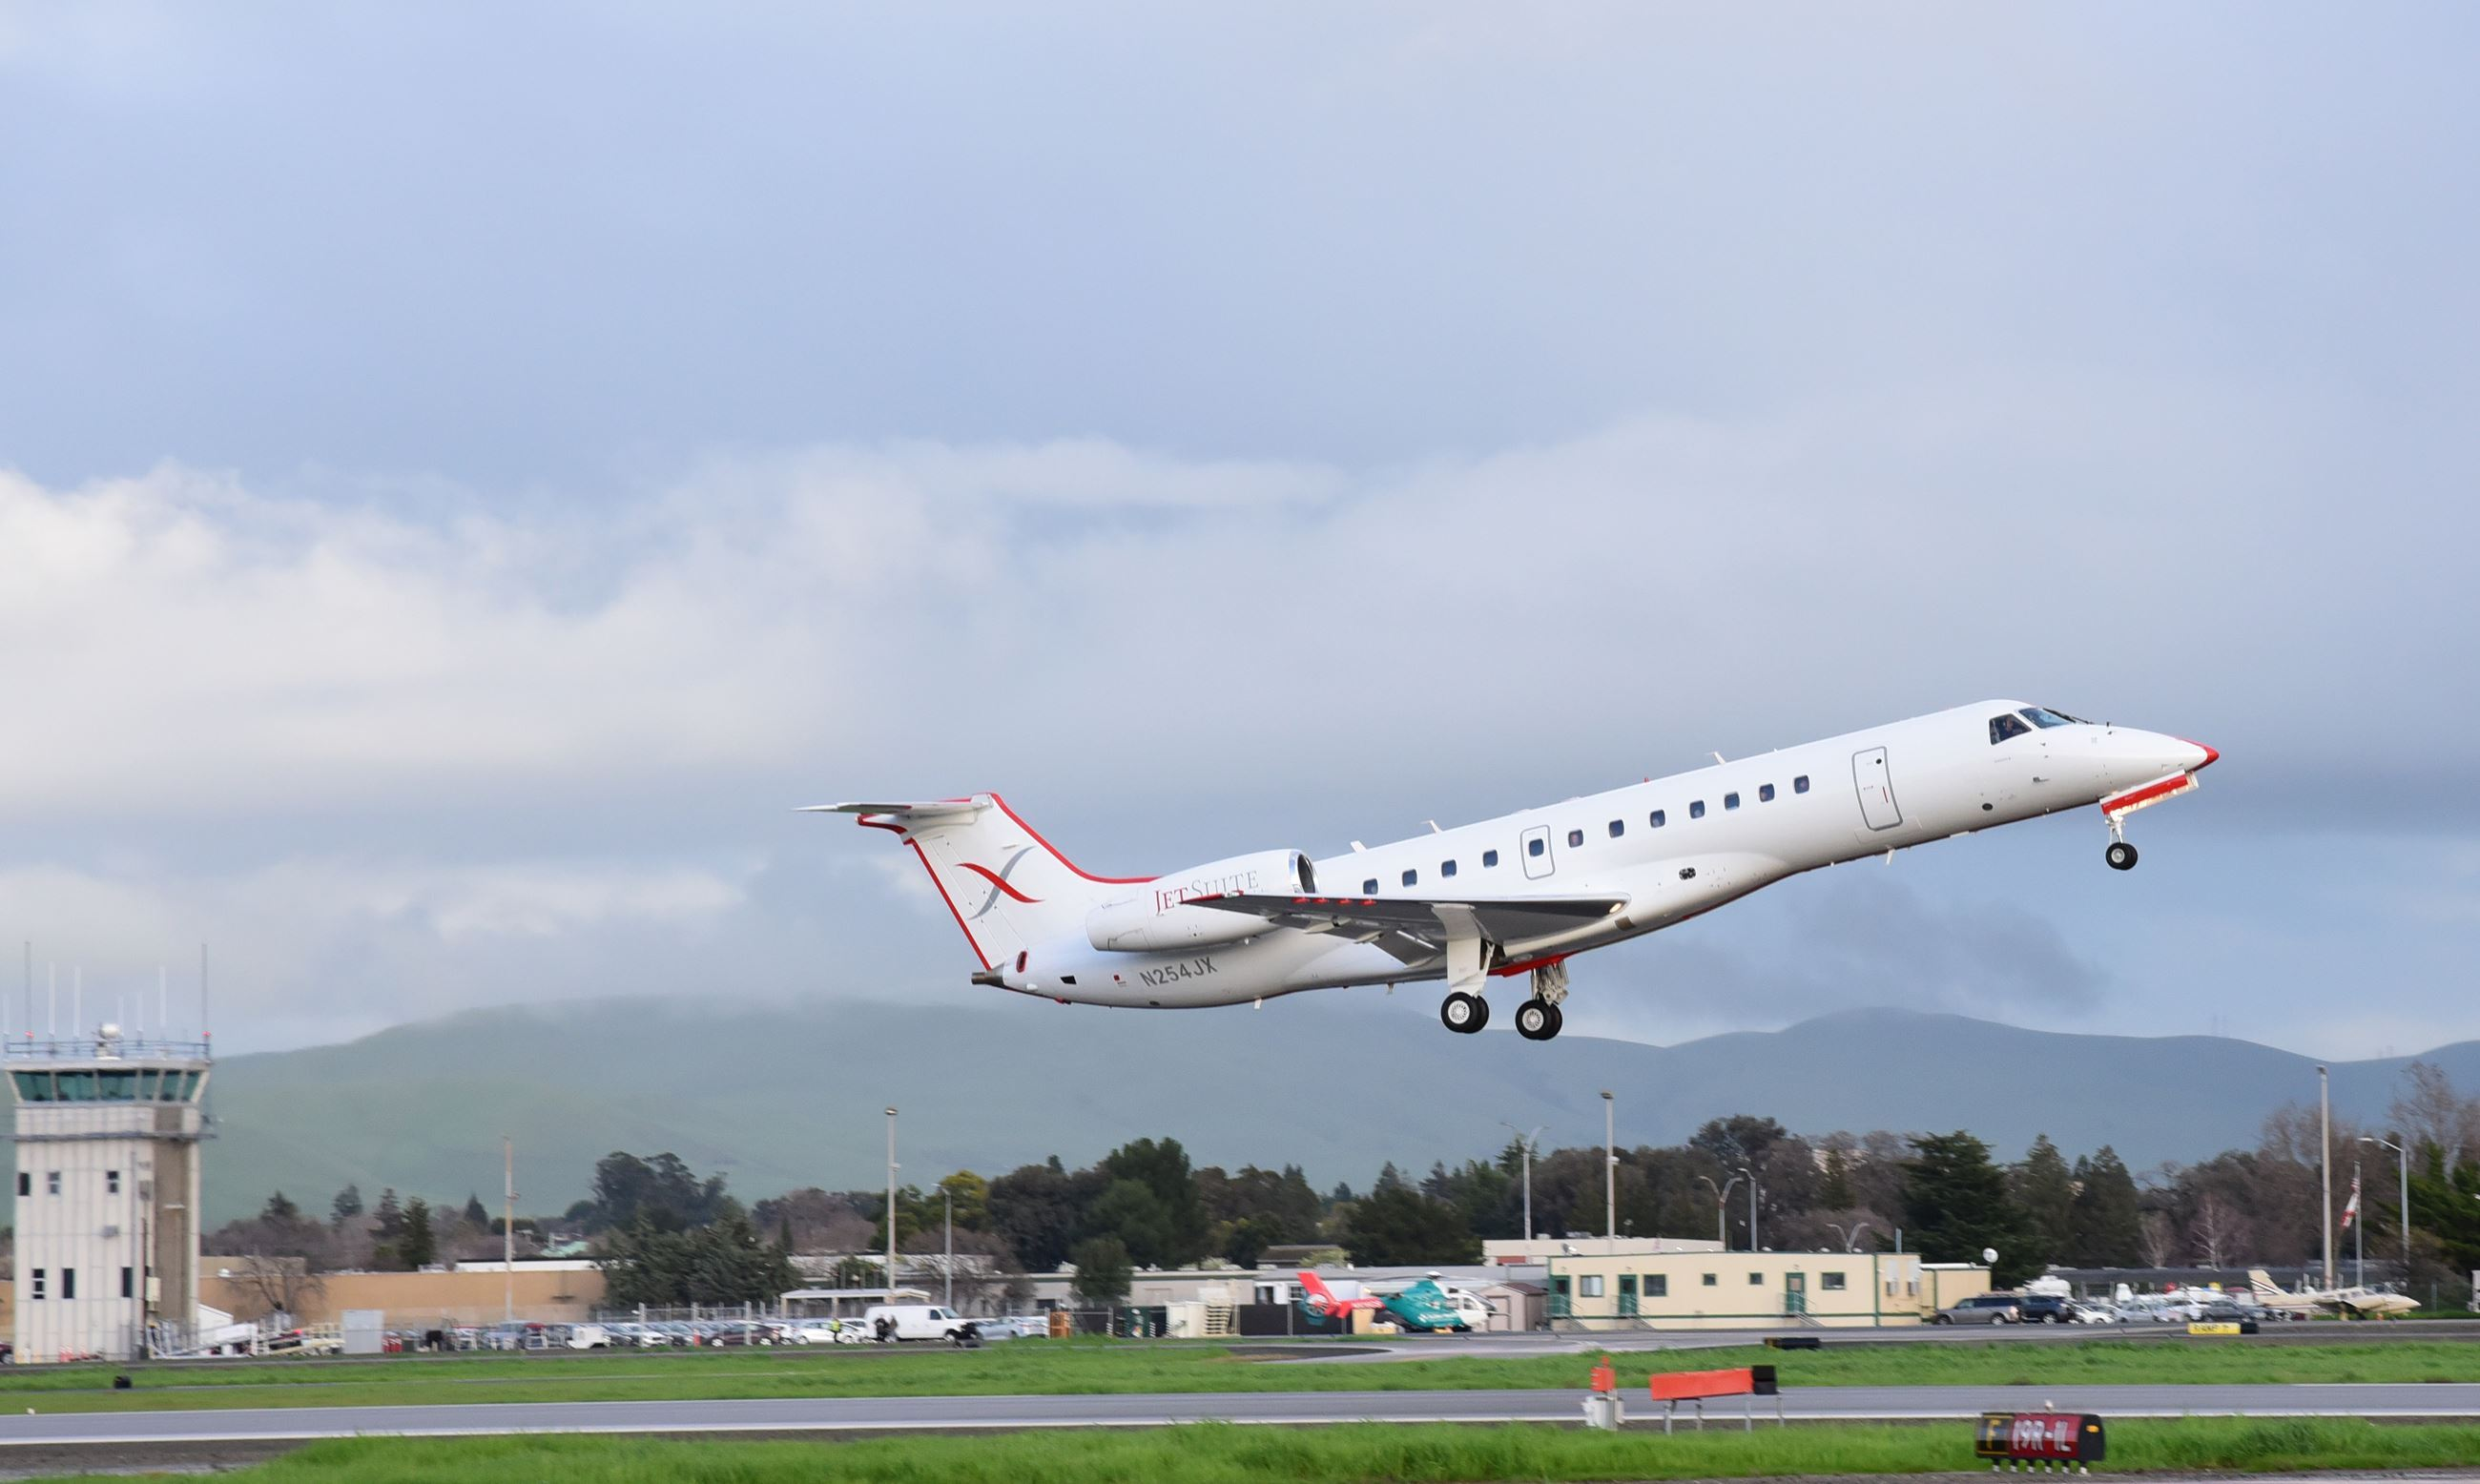 Jetsuite taking off from the airport